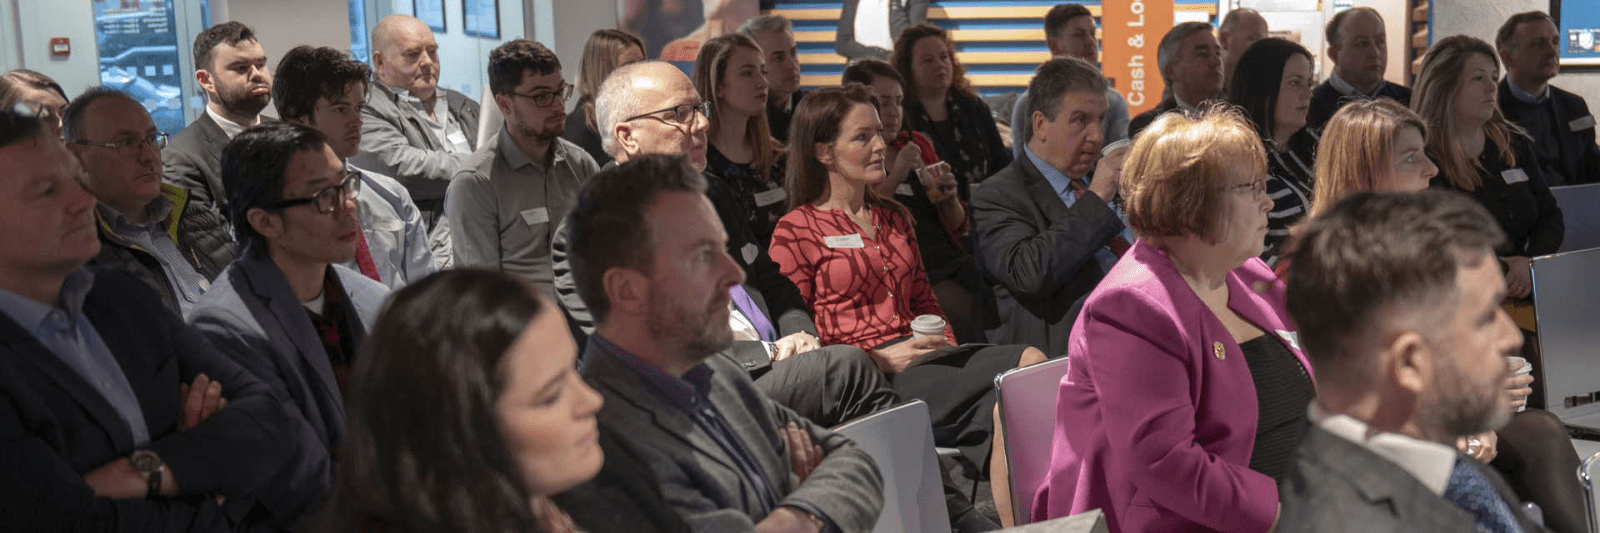 Business-Networking-at-Bank-of-Ireland-Ballycoolin-13-w1600.png